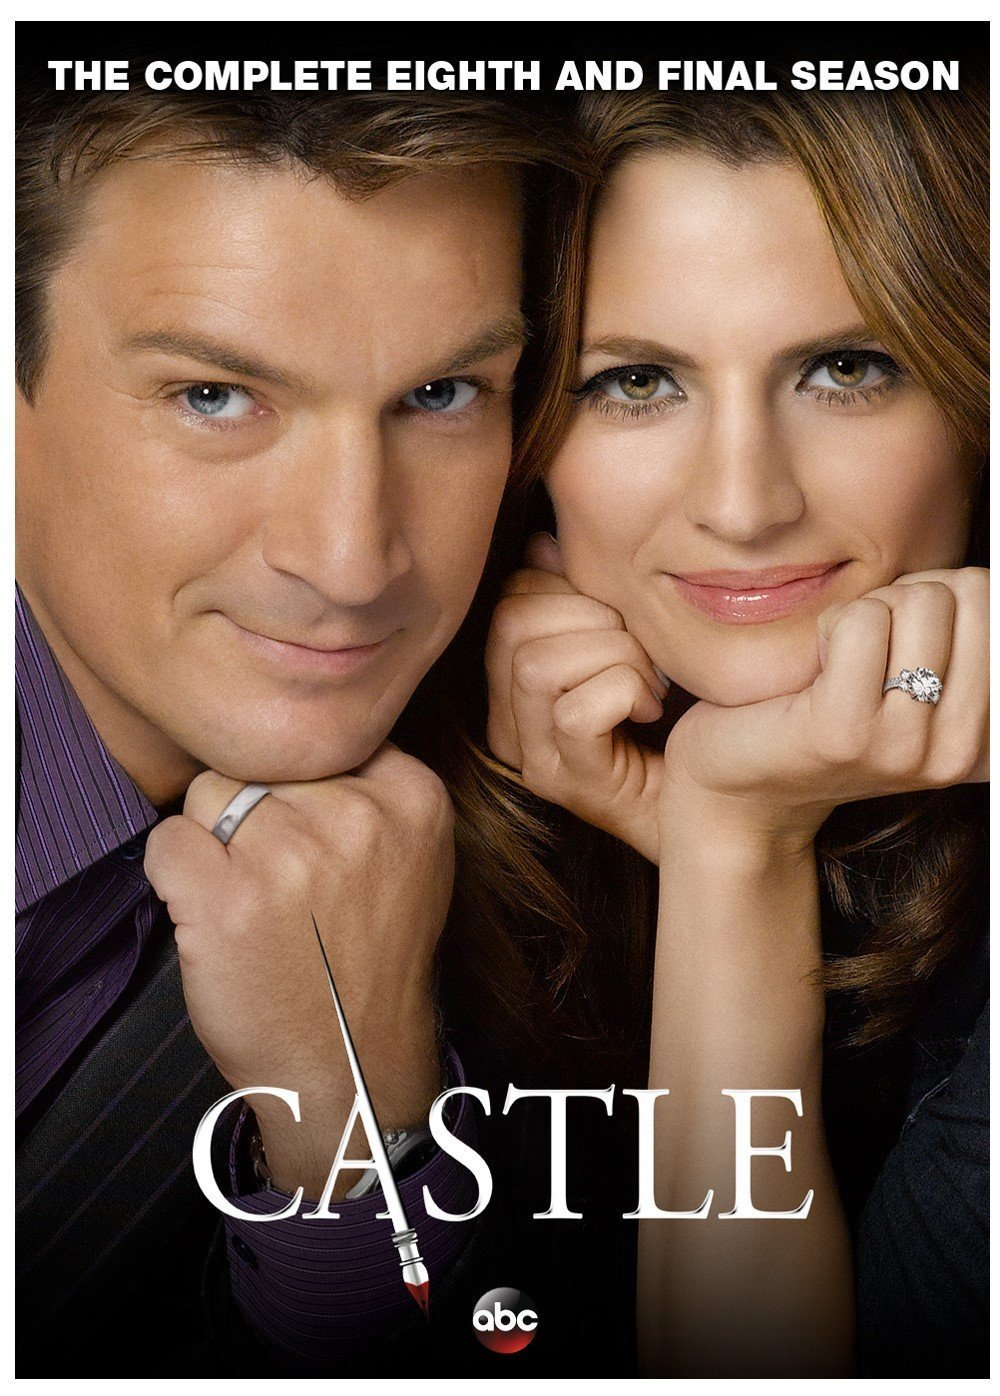 Castle [TV Series] - Castle: The Complete Eighth & Final Season